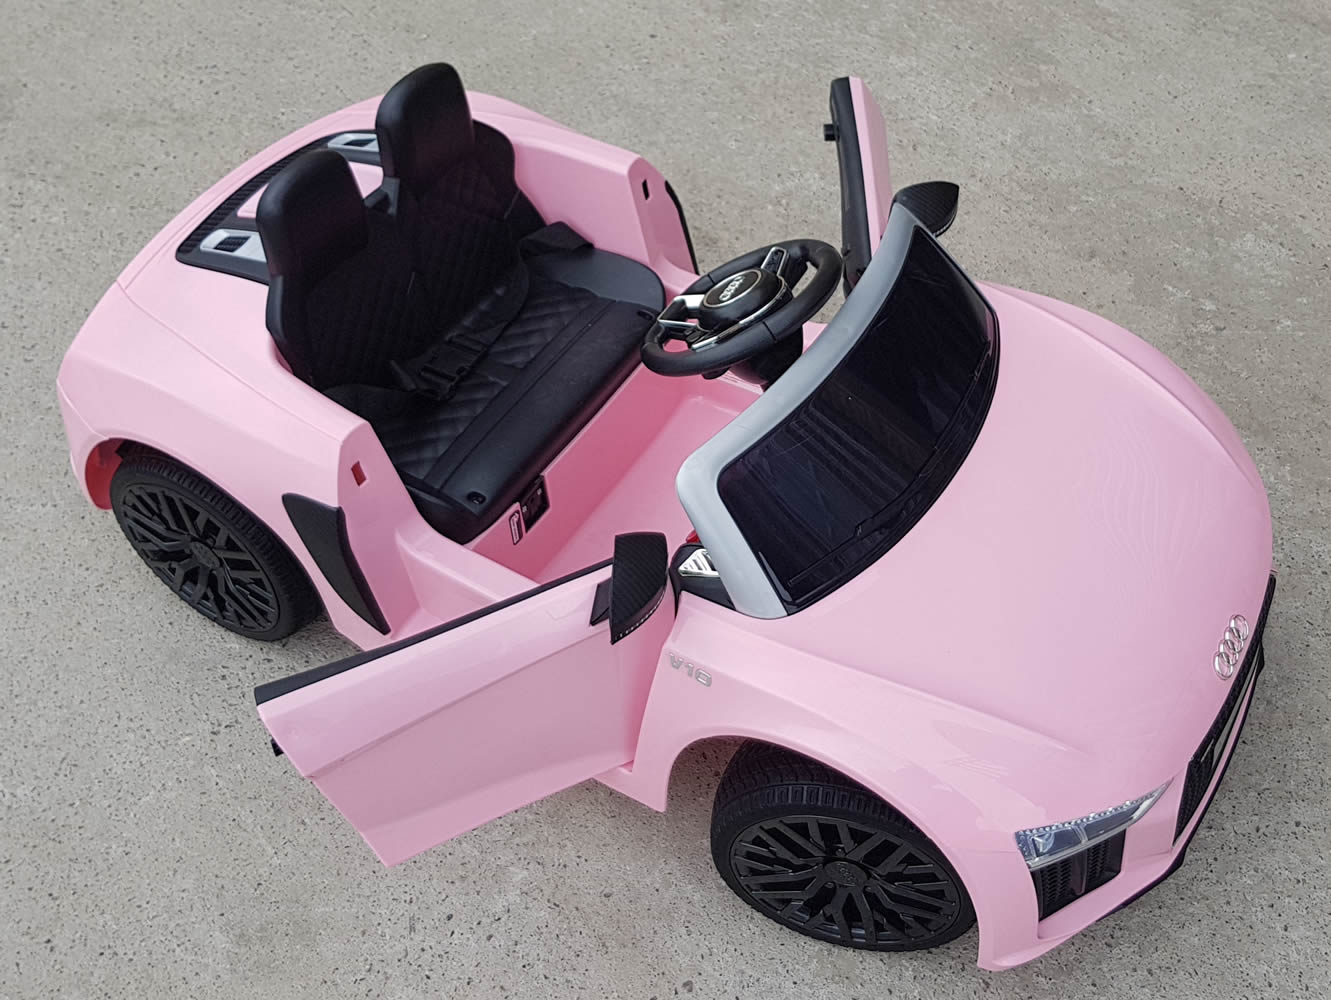 Christmas Sale Audi R8 Spyder Compact 12v Kids Car with Remote - Pink